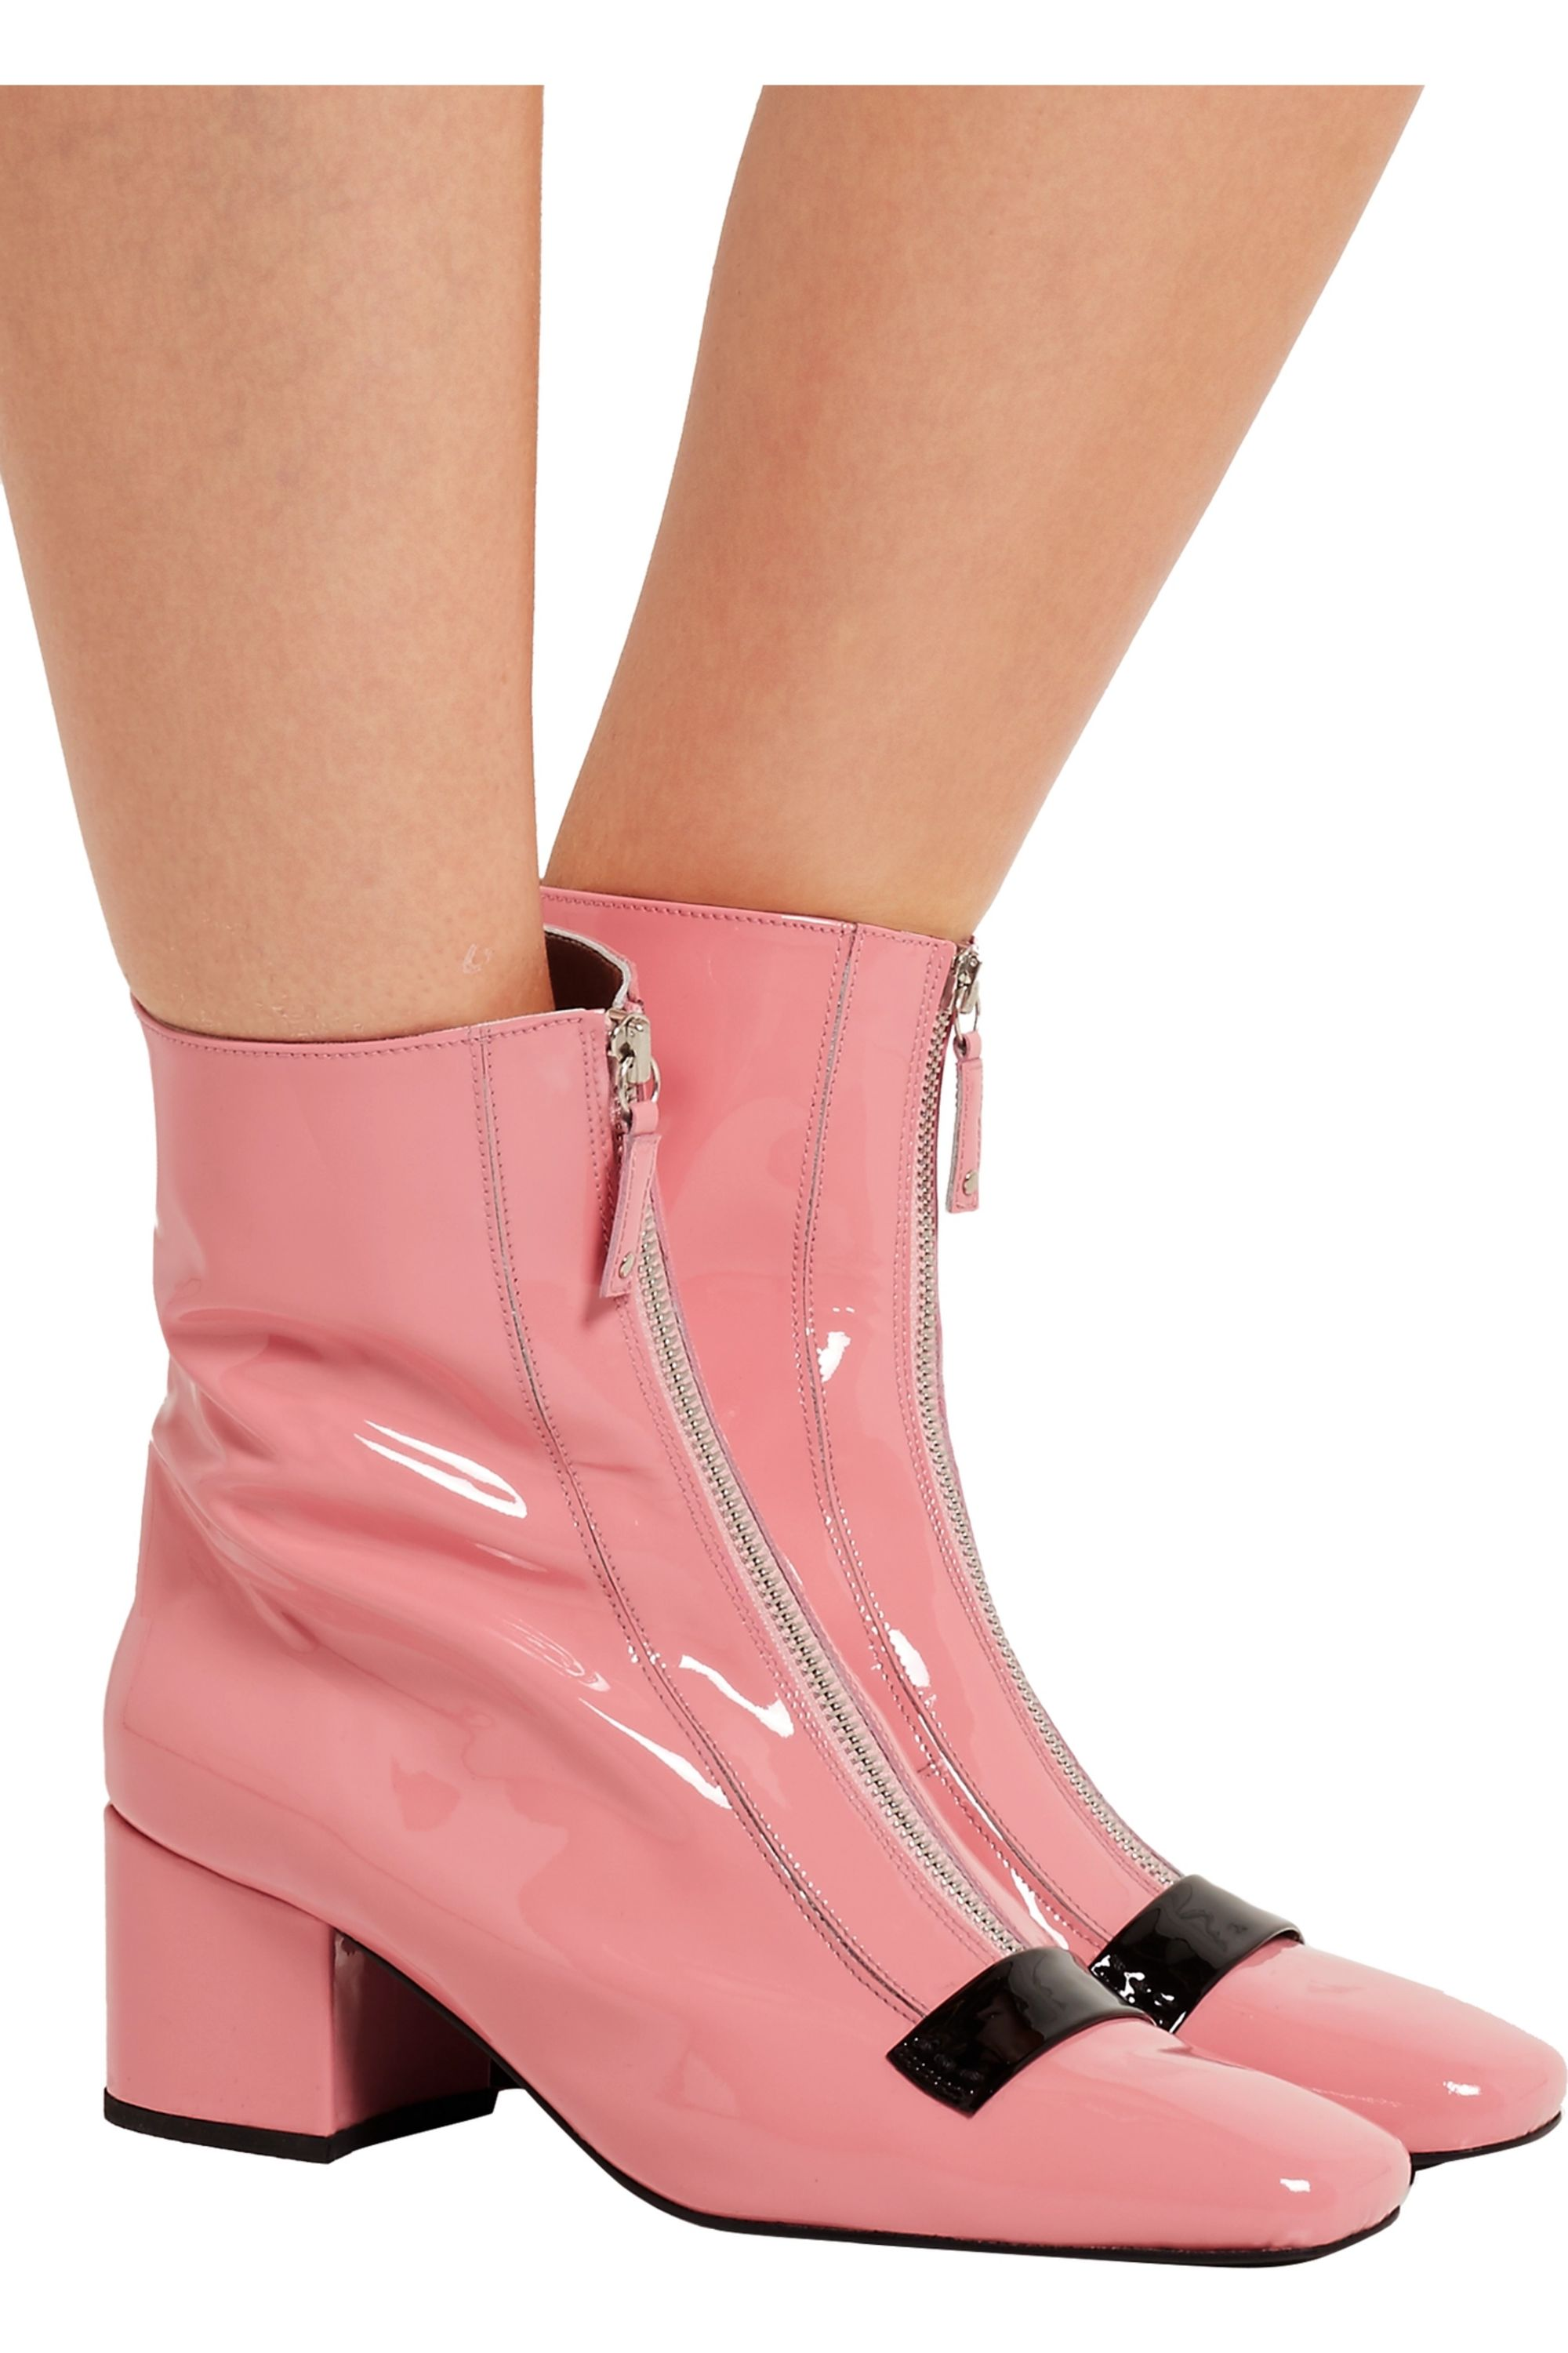 DORATEYMUR Double Delta patent-leather ankle boots